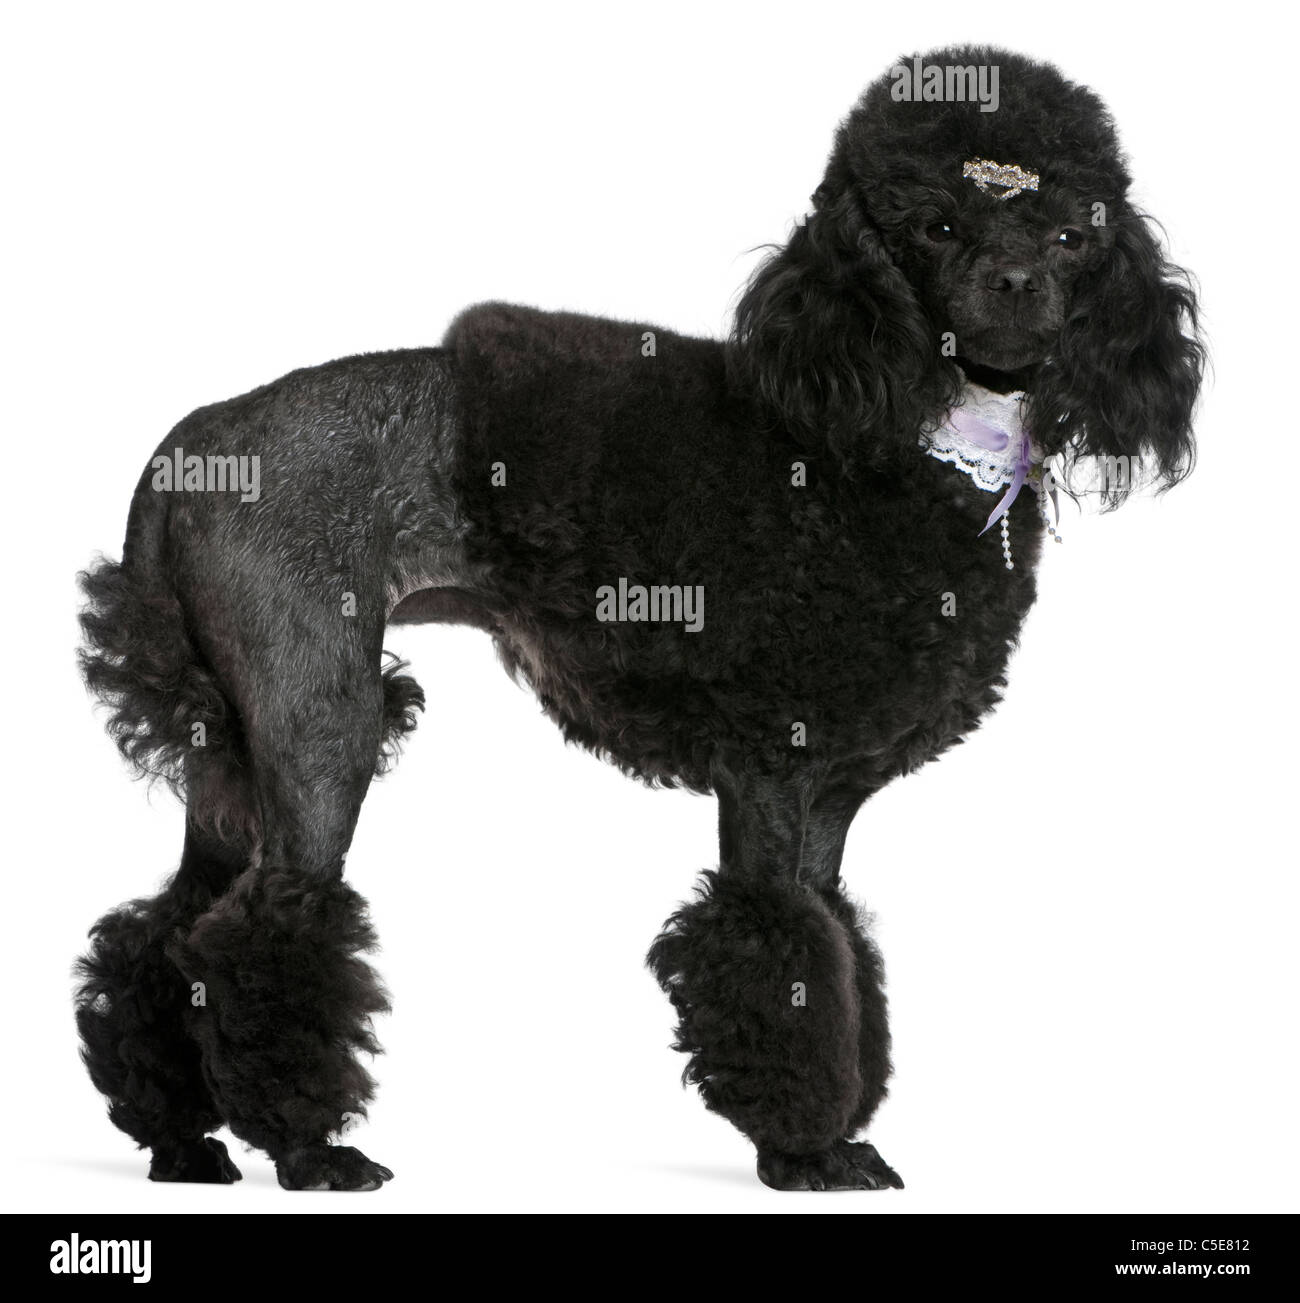 Black groomed Poodle, 2 years old, standing in front of white background - Stock Image